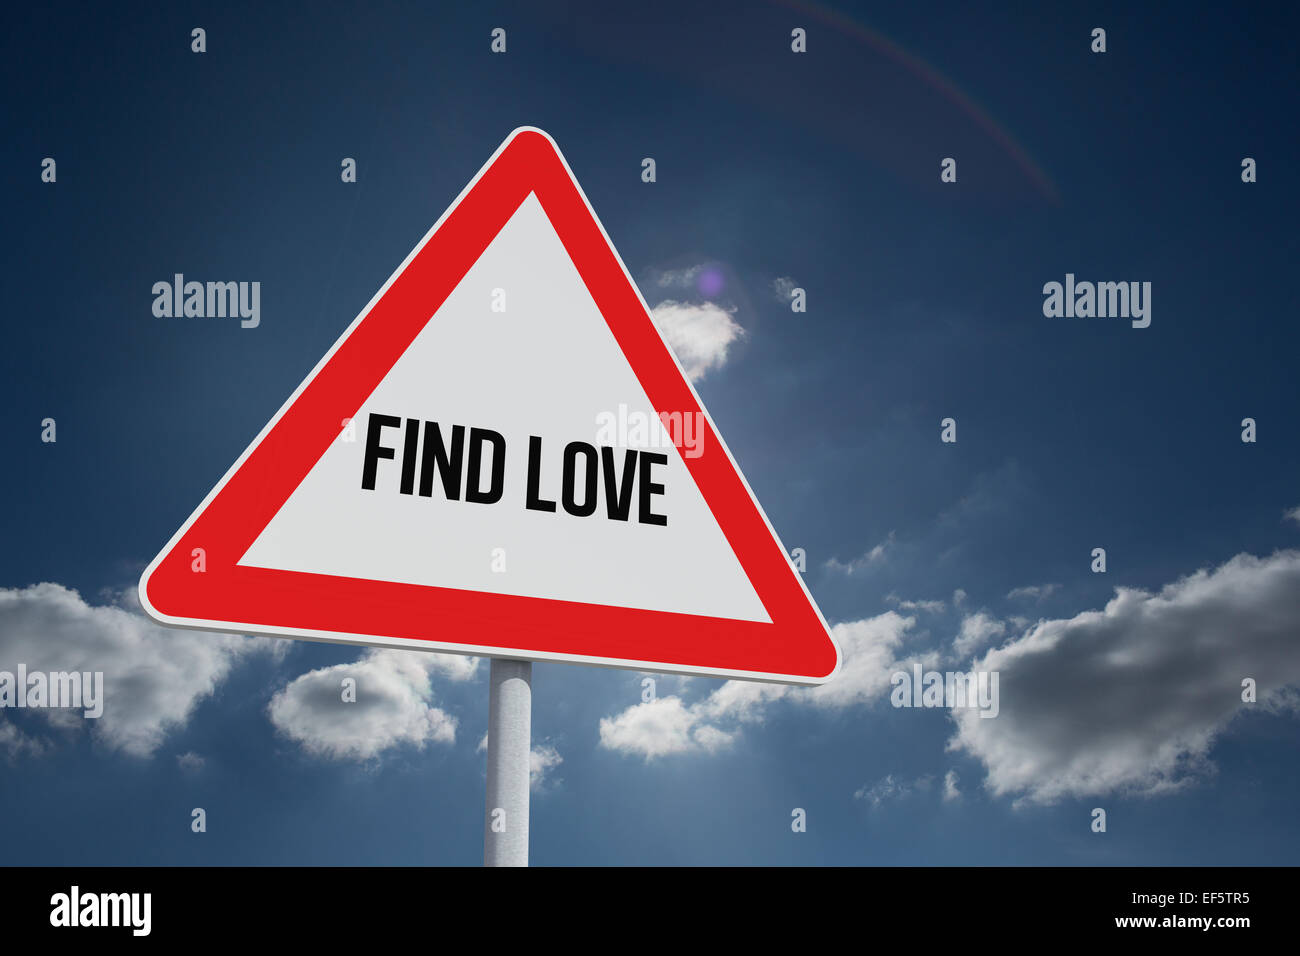 Find love against sky - Stock Image